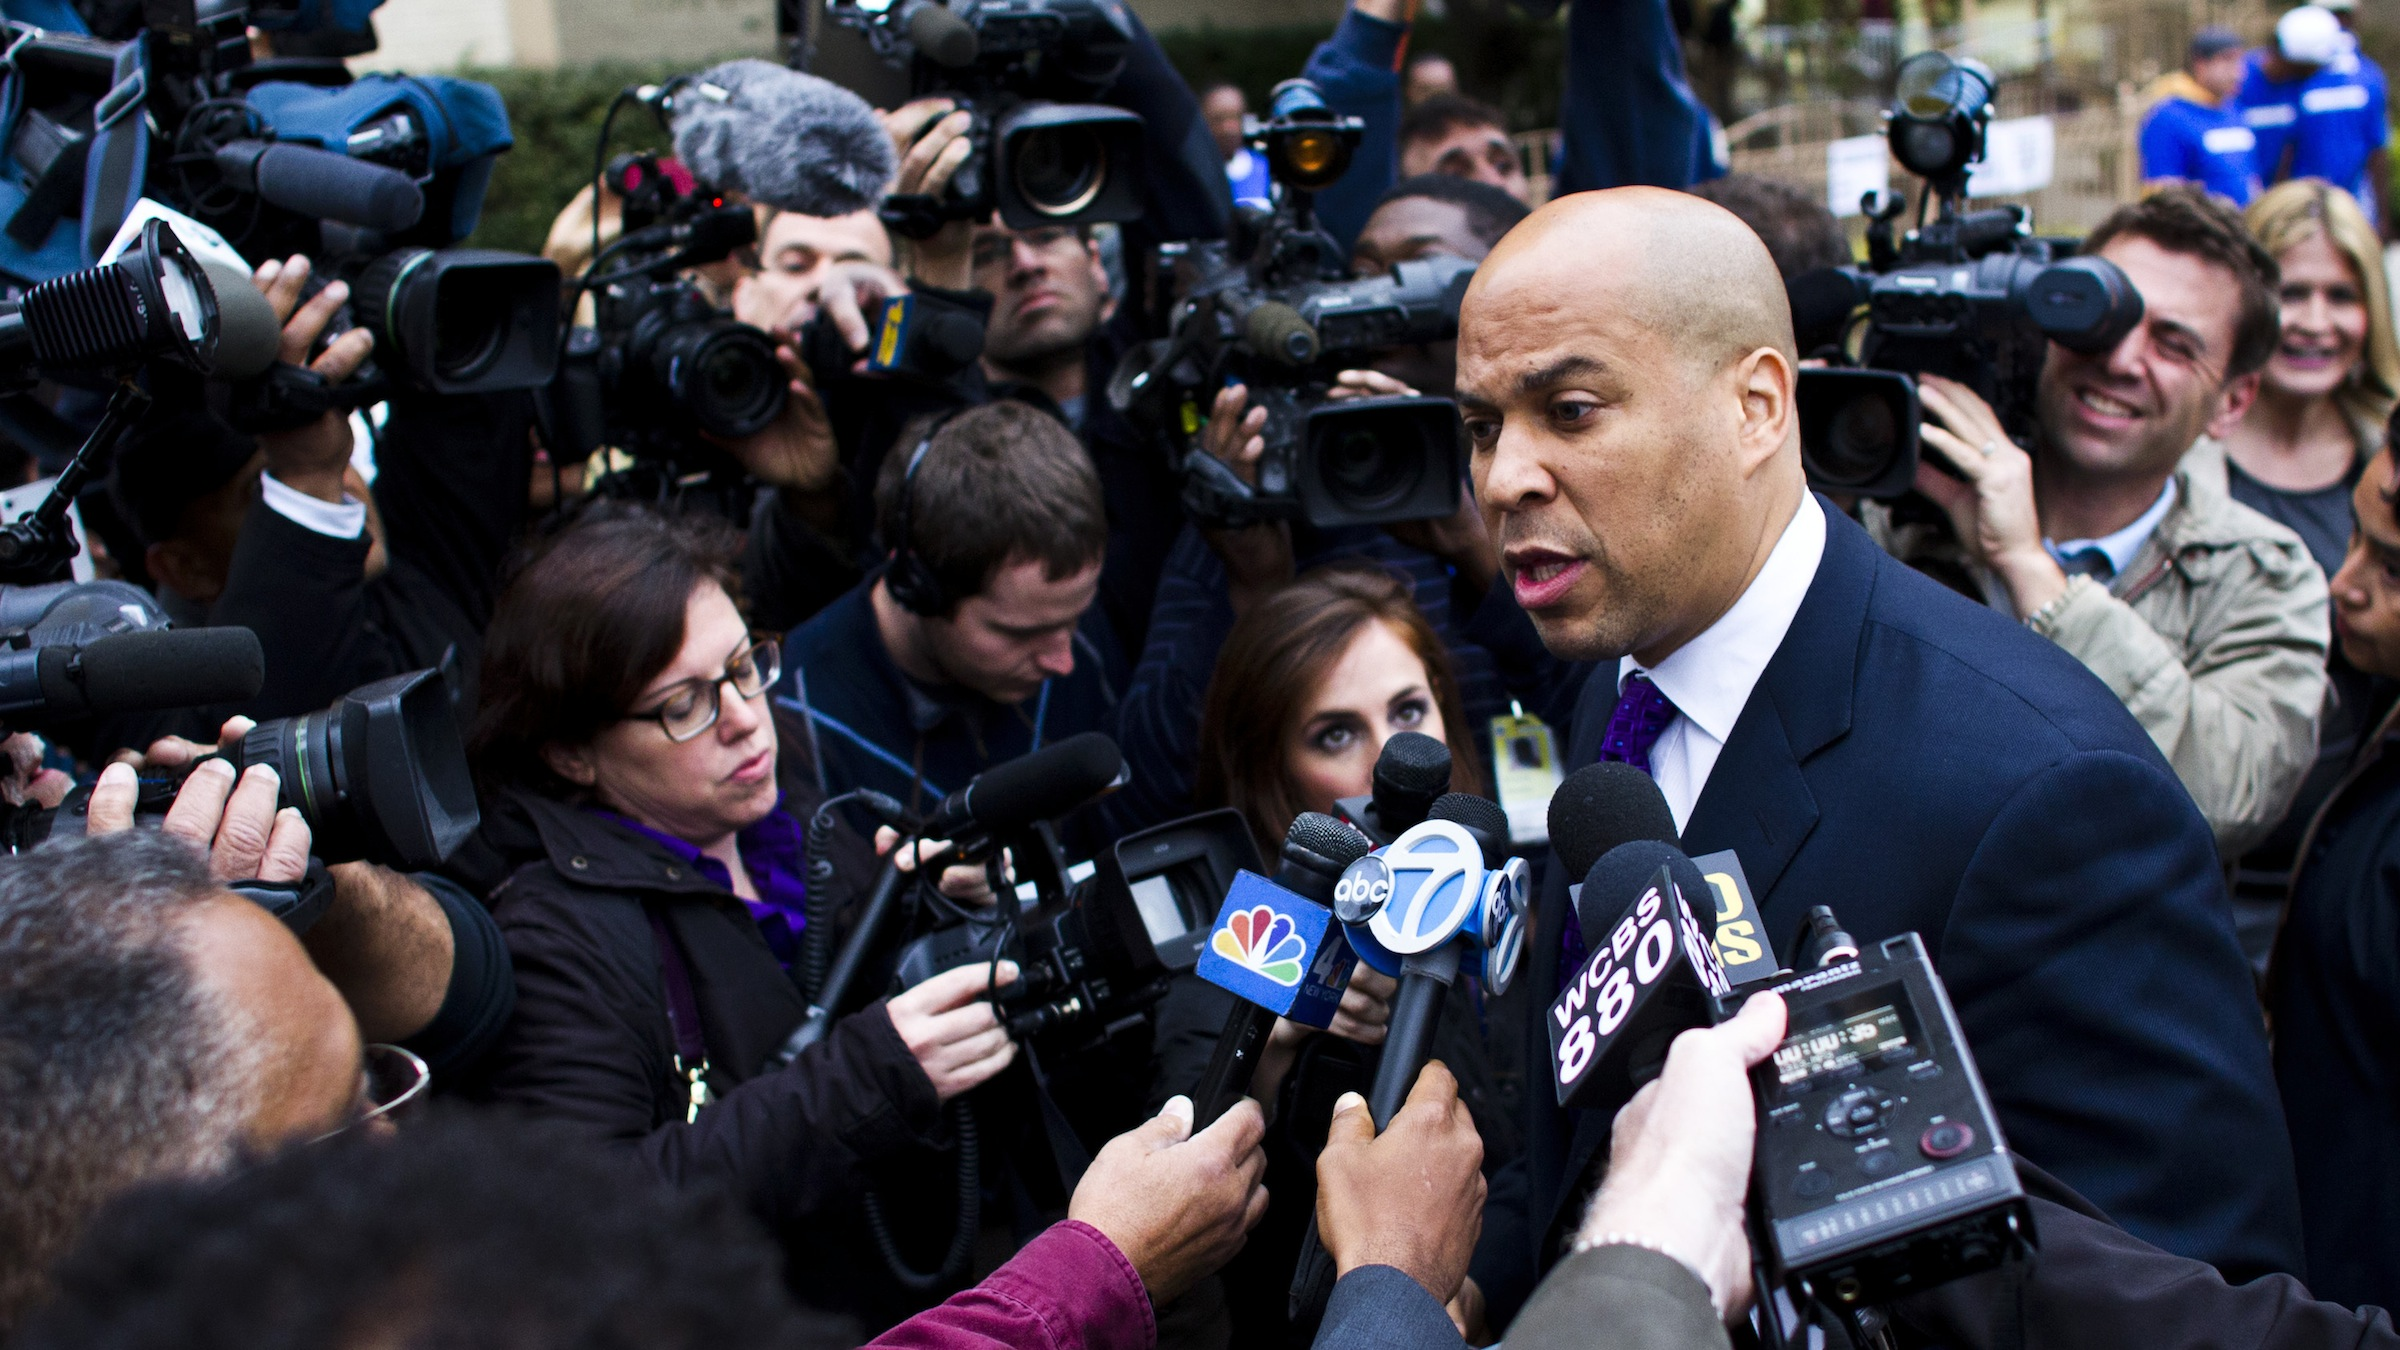 Newark Mayor and U.S. Senate candidate Cory Booker speaks with members of the media before casting his ballot during the Senate primary election in Newark, New Jersey, October 16, 2013. Booker, the charismatic mayor of New Jersey's largest city, is heavily favored to beat conservative activist Steve Lonegan when voters head to the polls on Wednesday in a special election to fill New Jersey's vacant U.S. Senate seat. REUTERS/Eduardo Munoz (UNITED STATES - Tags: POLITICS ELECTIONS) - RTX14DPK